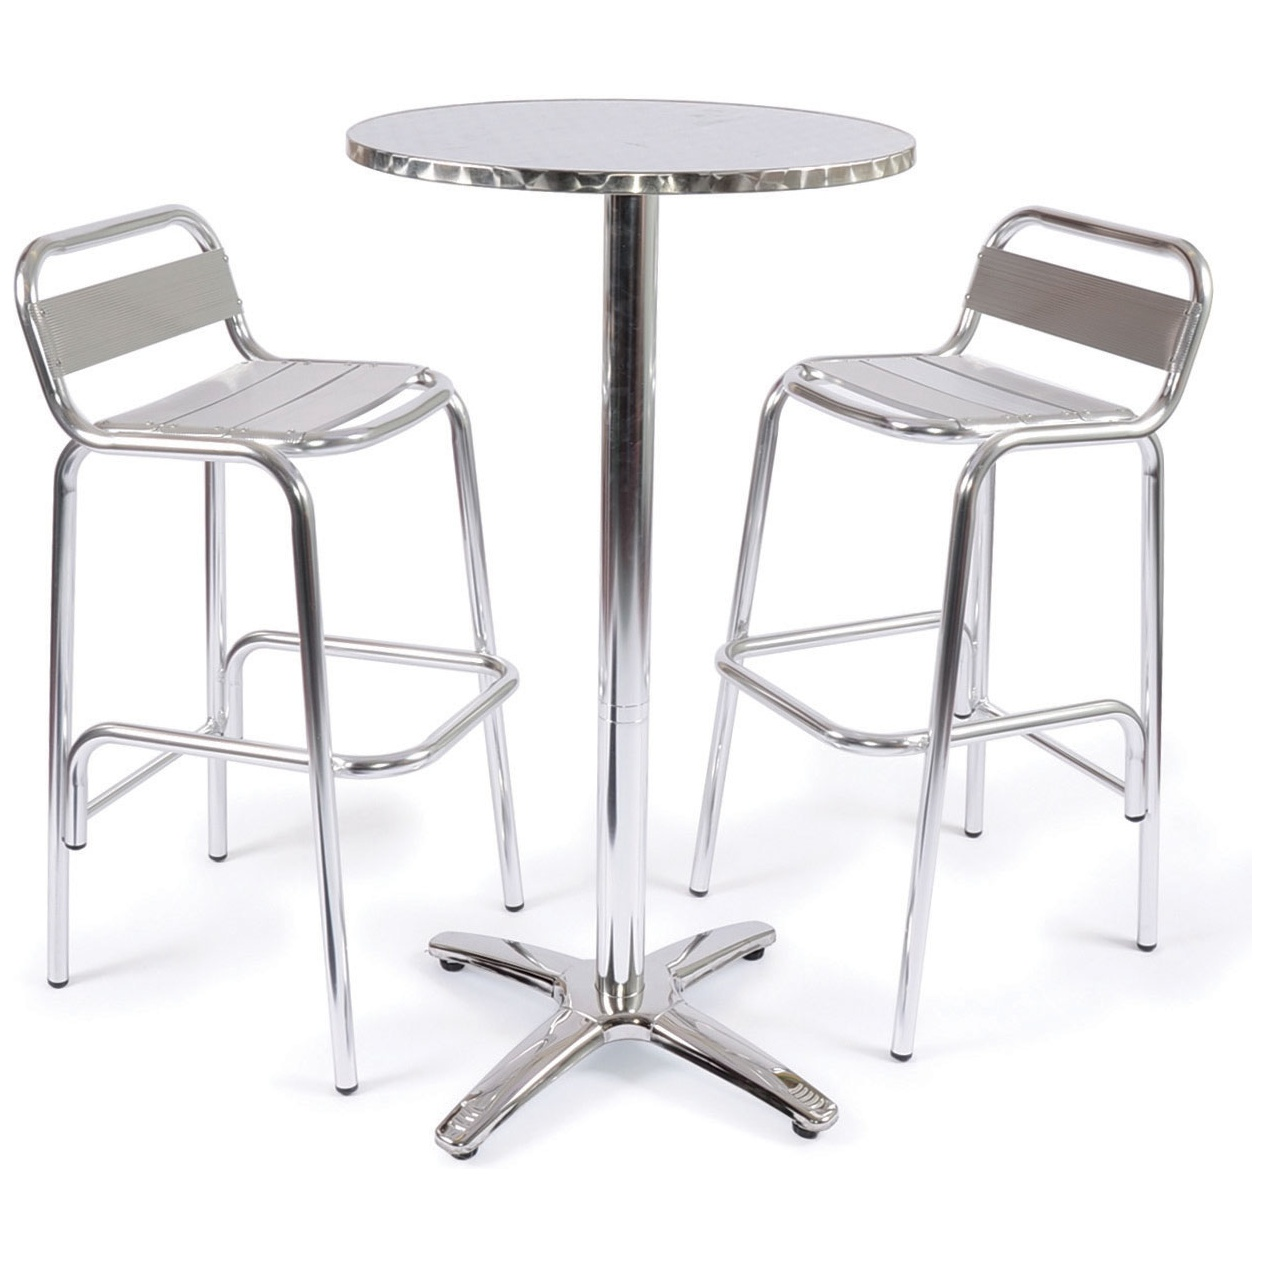 Aluminium Tall Bistro Set Outdoor Tables Chairs